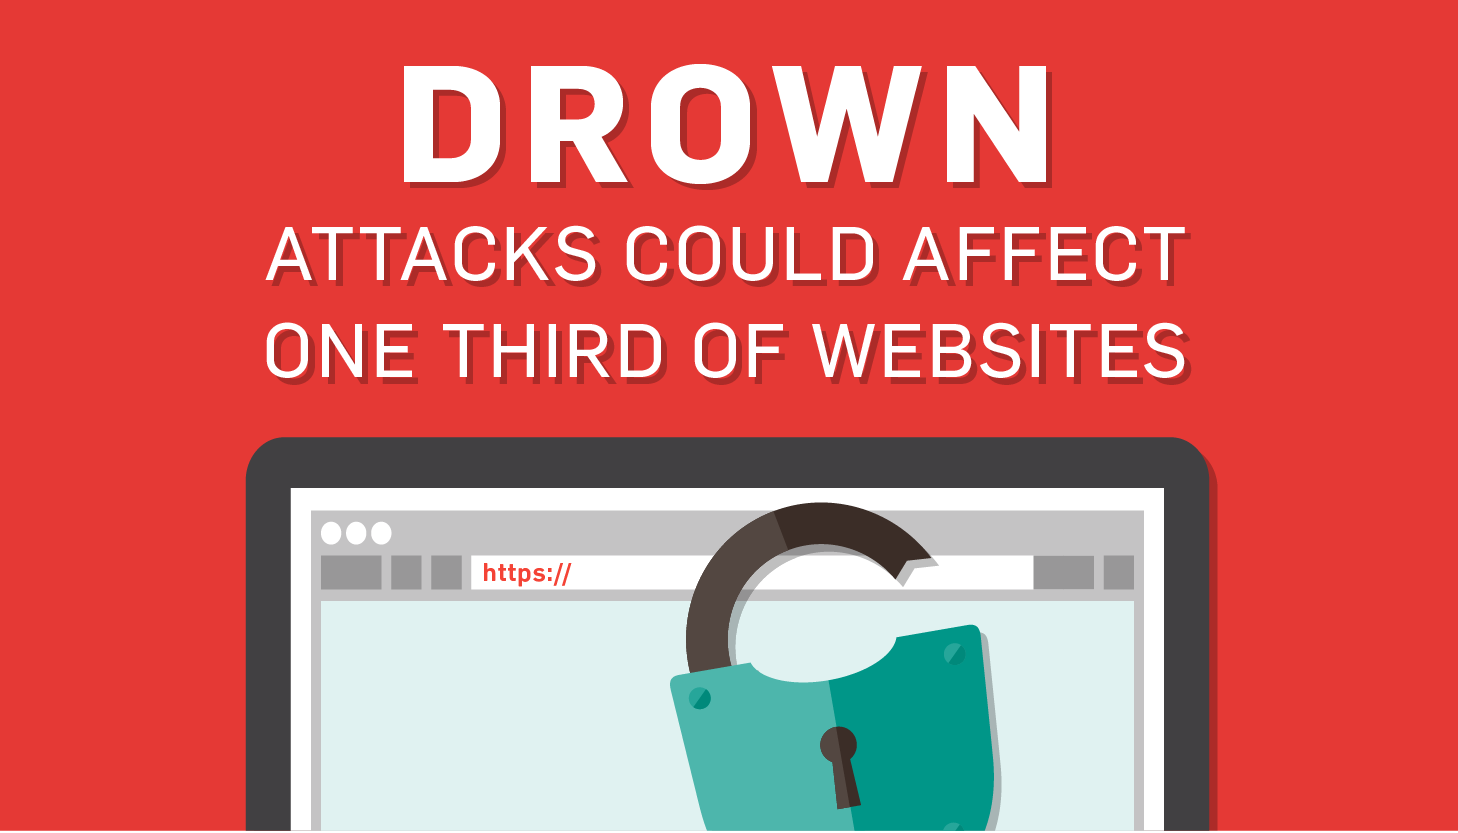 DROWN Attack and SSL: What You Need to Know